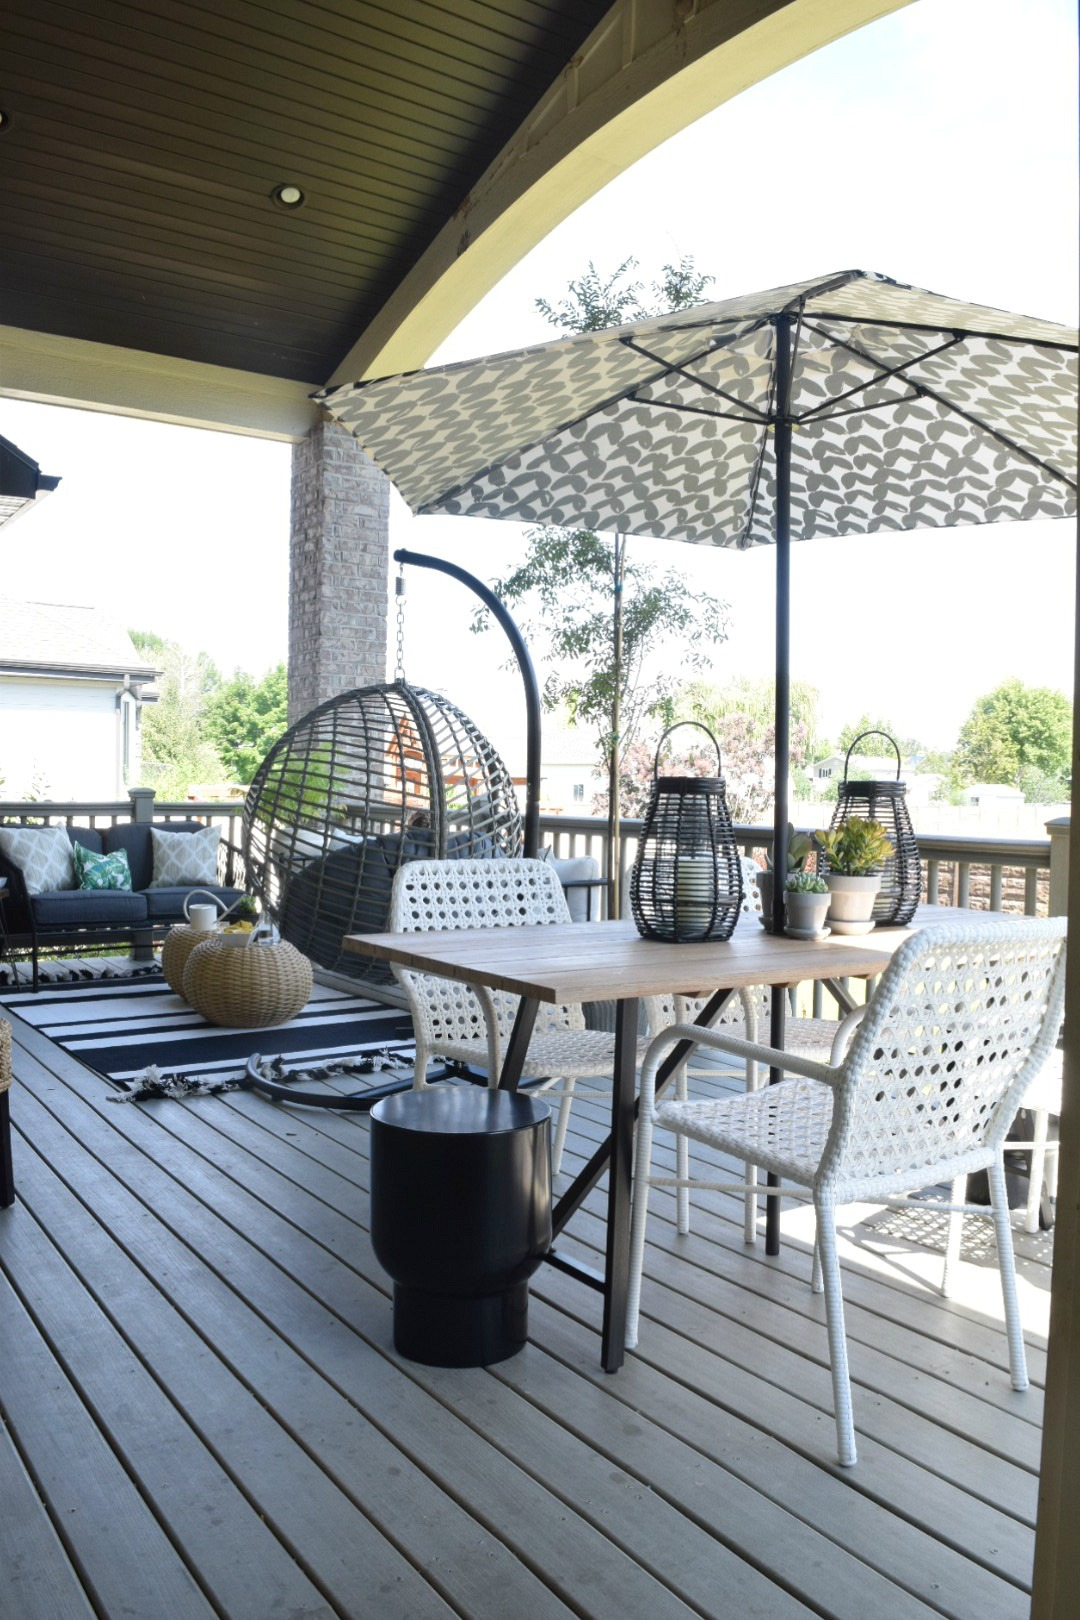 Outdoor Patio and Living Space with Hanging Chair ... on Backyard Outdoor Living Spaces id=46022